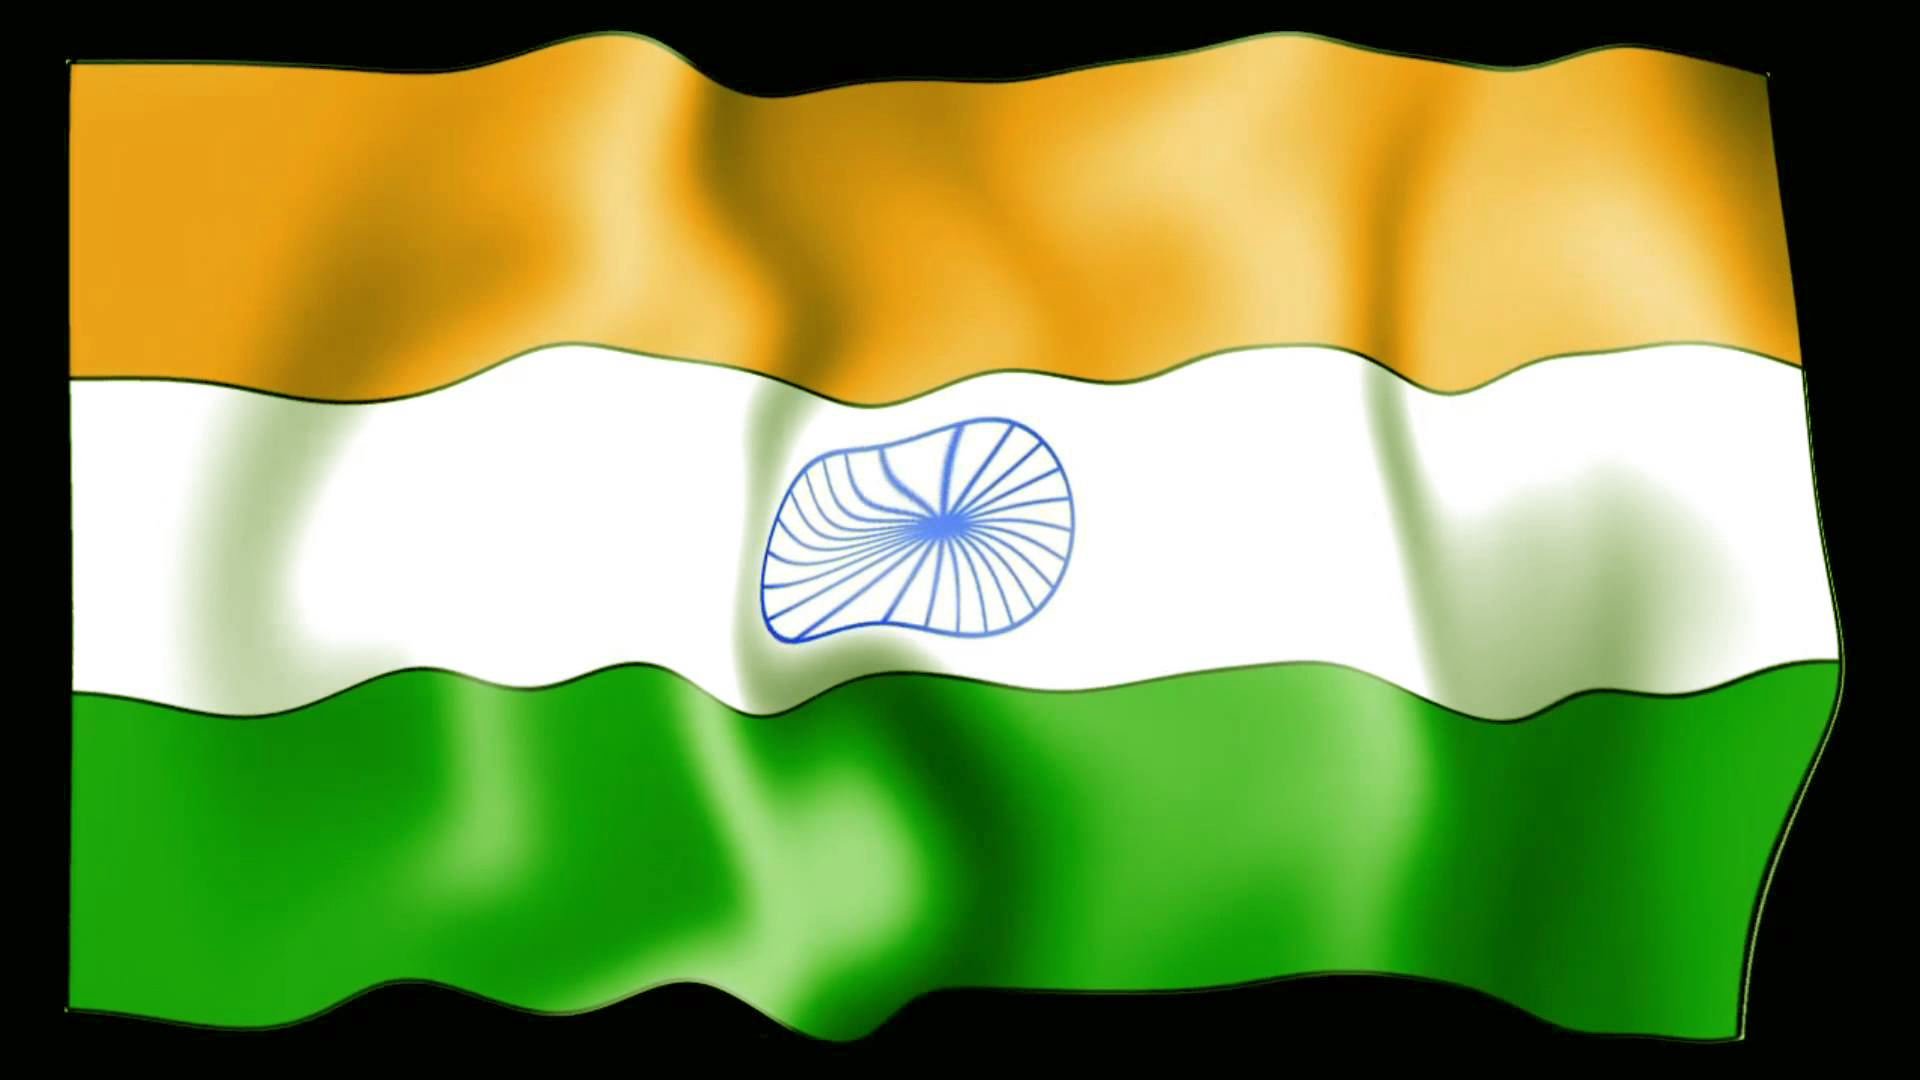 New Indian Flag Hd Wallpapers Images 2015 Happy Independence Day